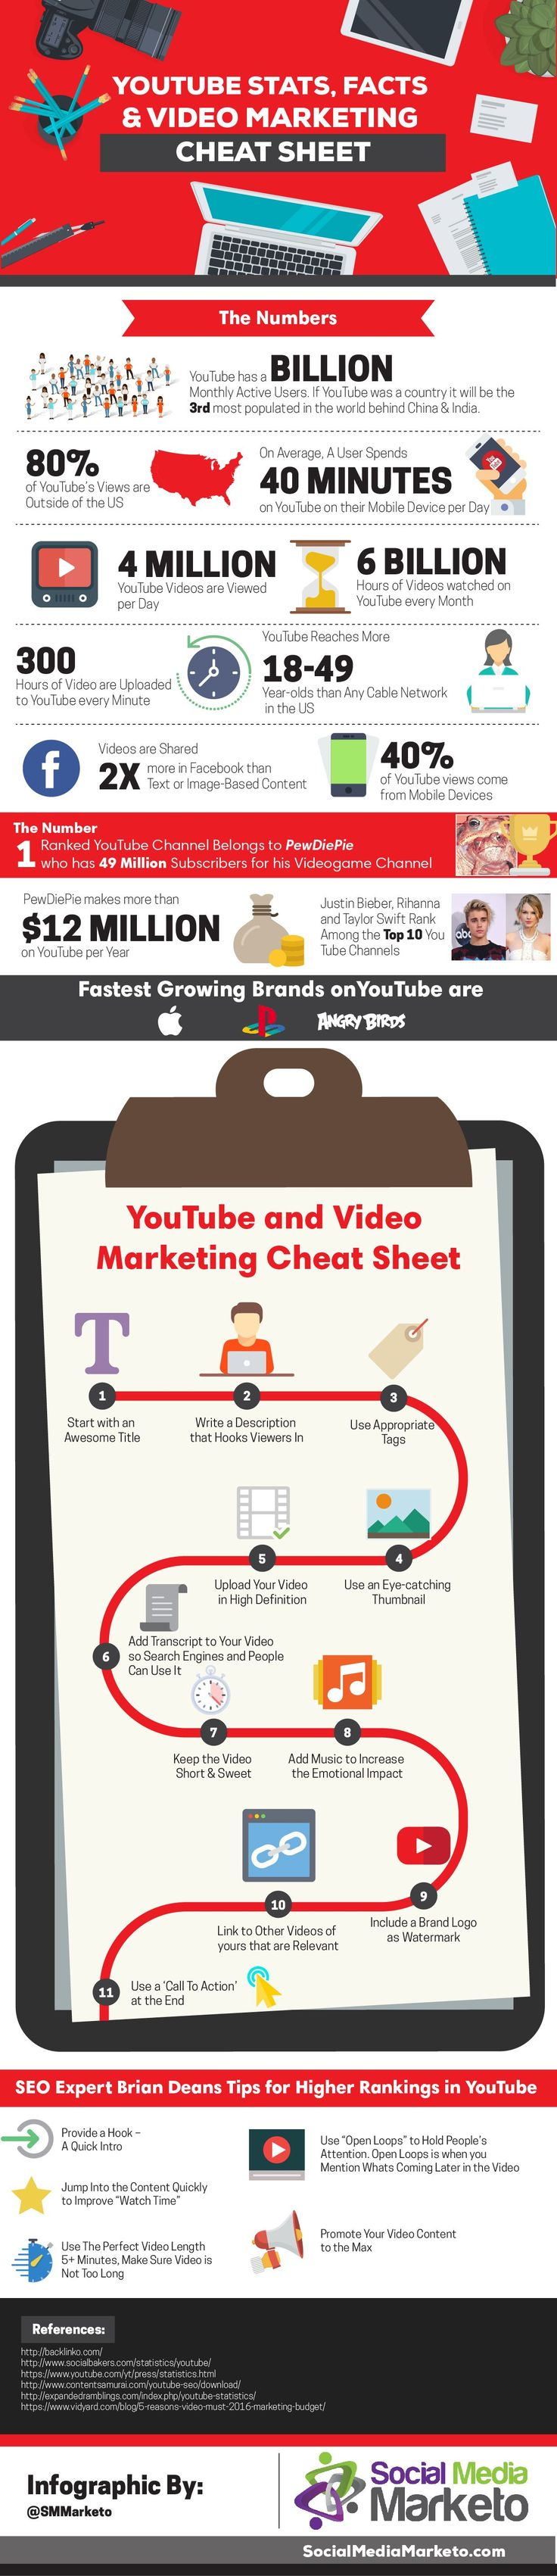 YouTube Marketing Cheat Sheet [Infographic] | Social Media Today